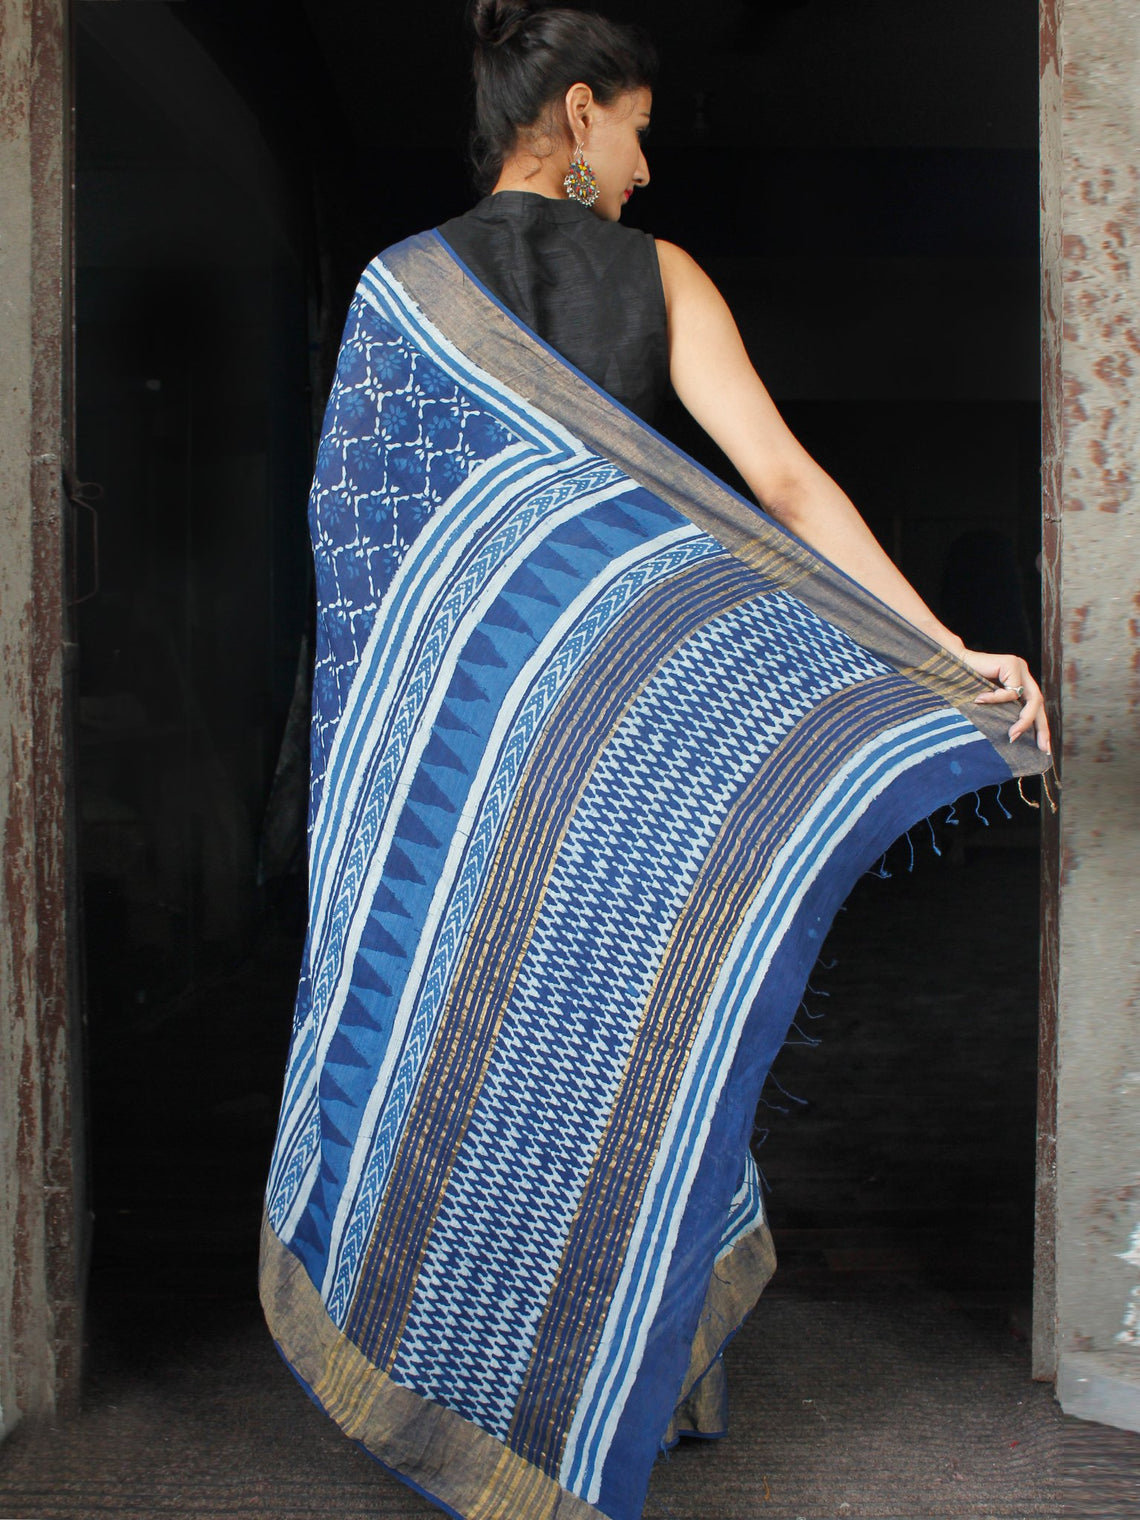 Indigo White Hand Block Printed Handwoven Linen Saree With Zari Border - S031703594